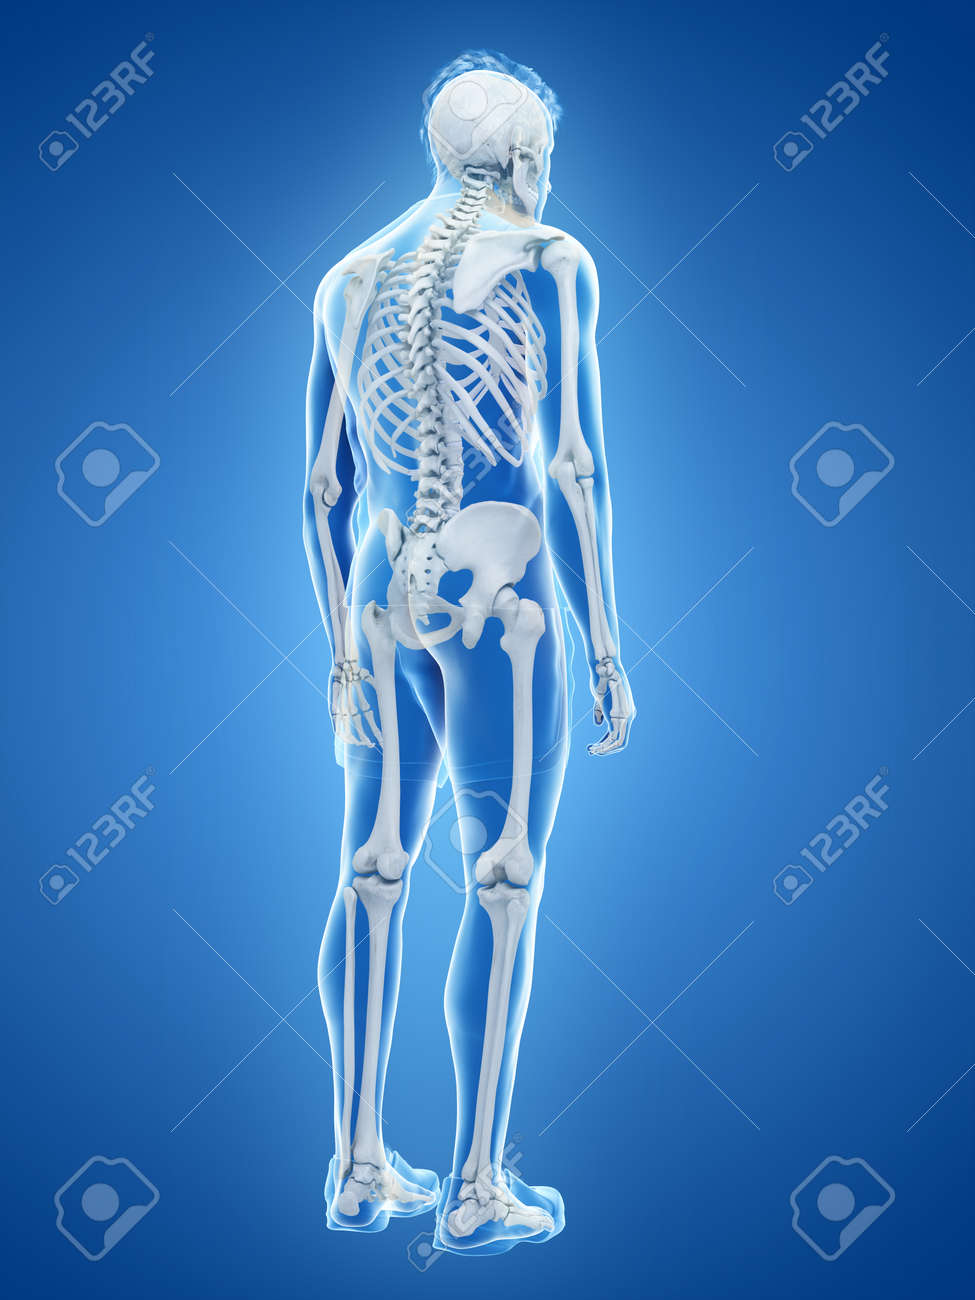 3d Rendered Medically Accurate Illustration Of The Human Skeletal